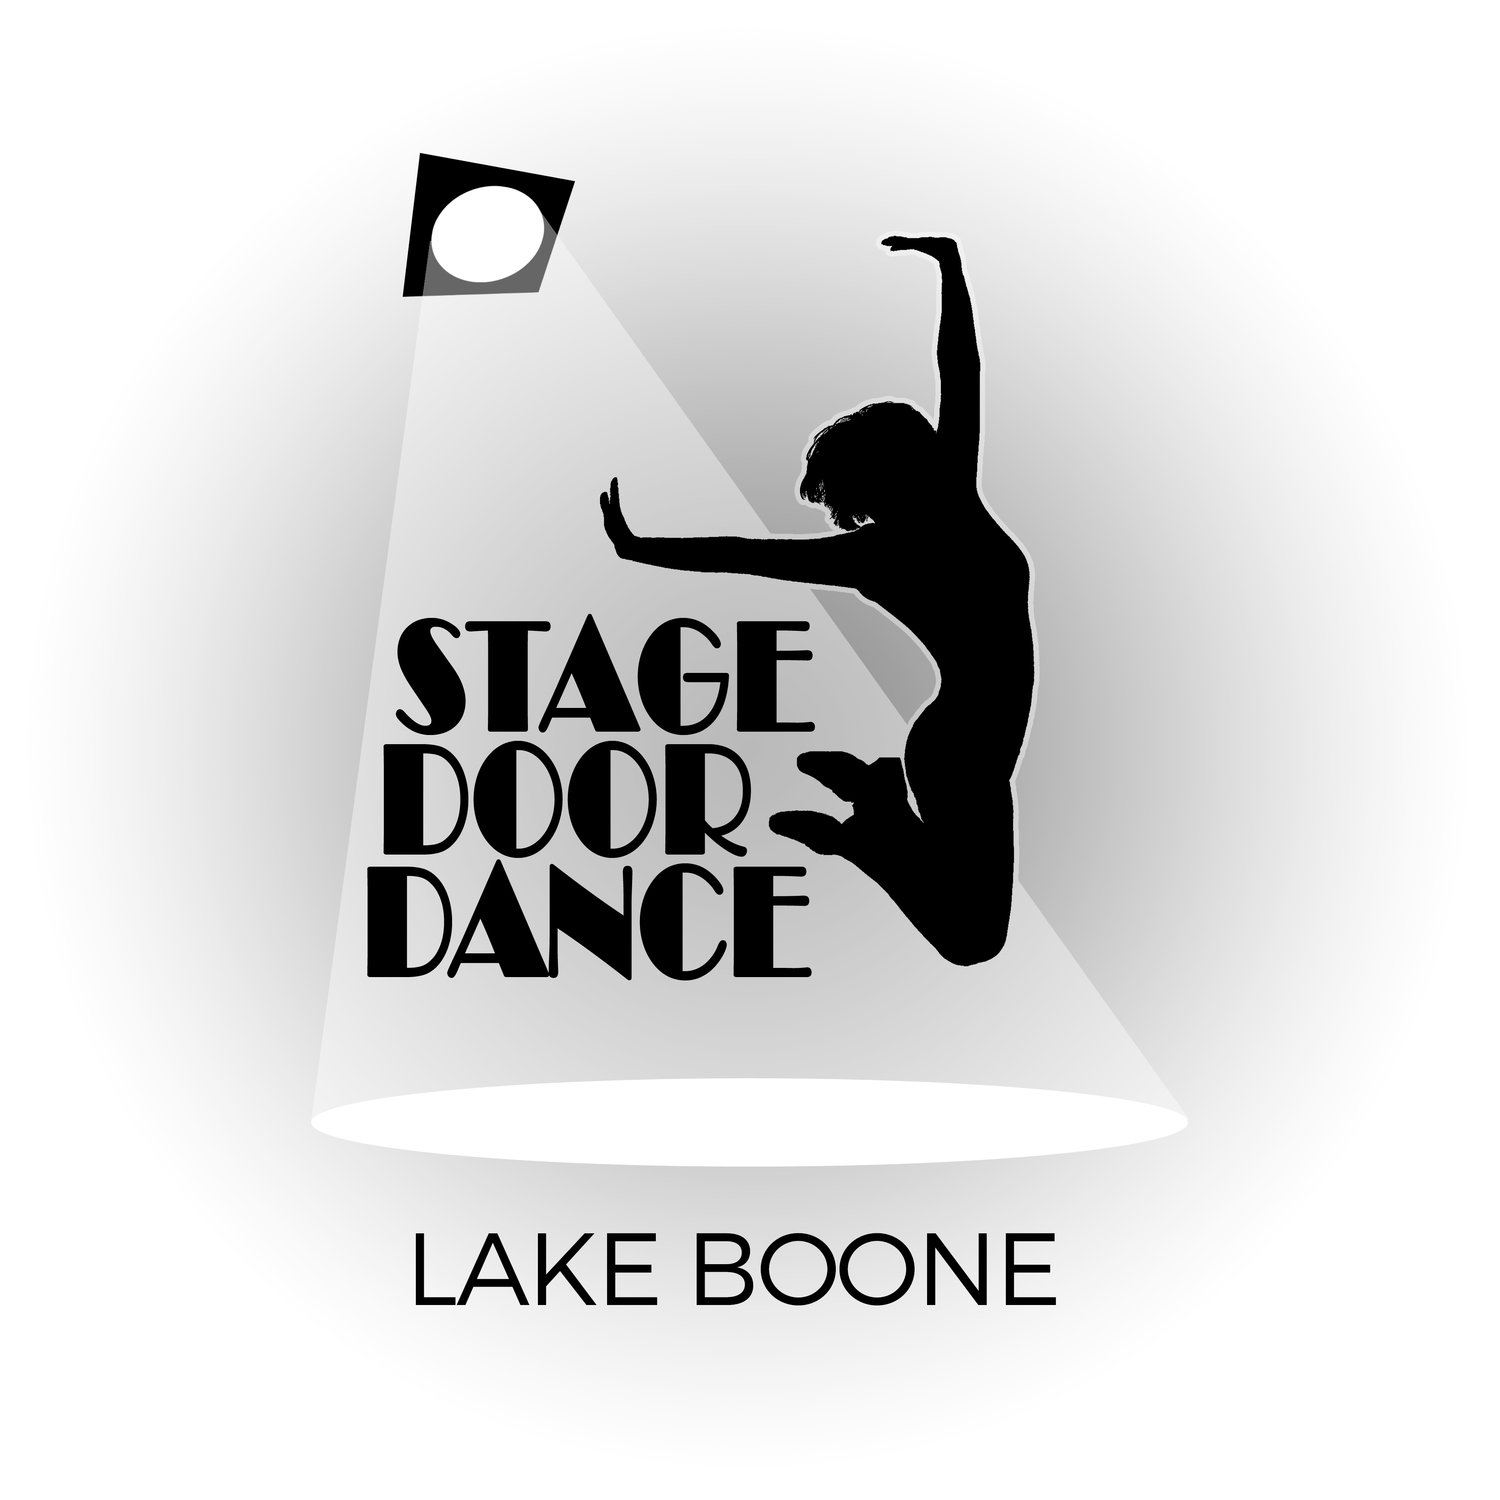 Stage Door Dance: Lake Boone